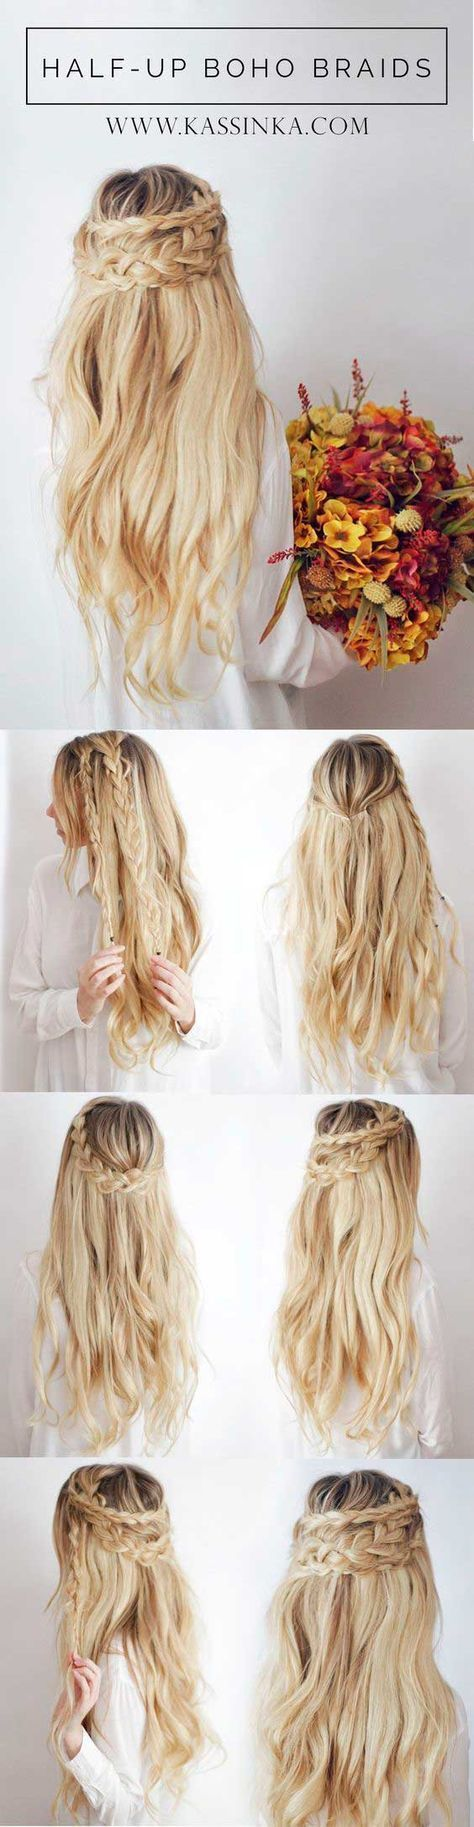 By now were all well aware that the half-up half-down hairstyle is very much A Thing in the beauty w